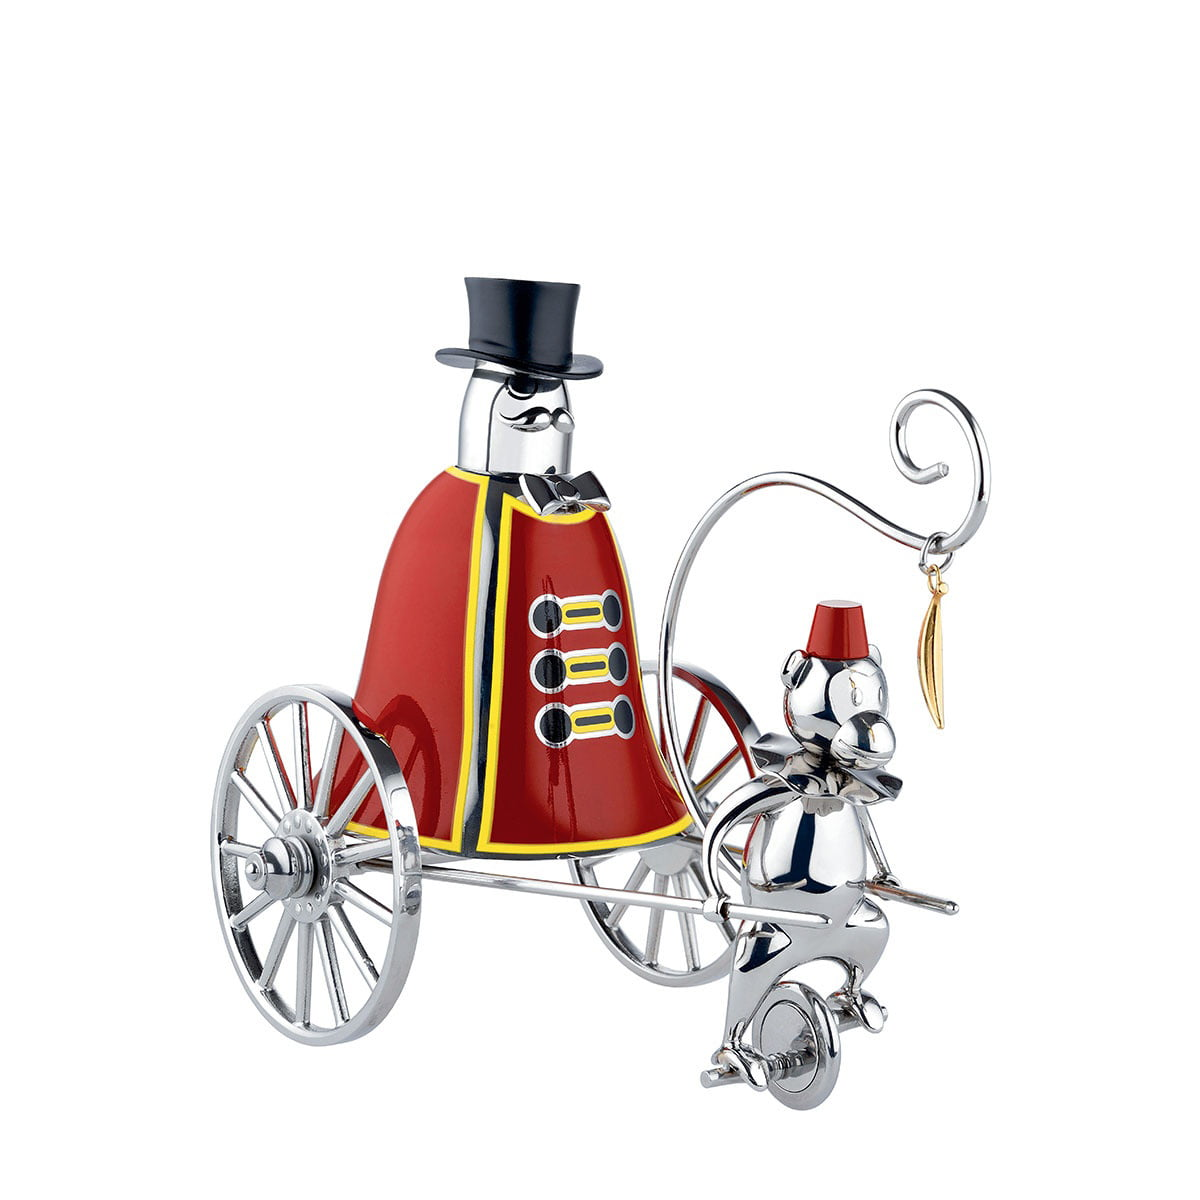 the ringleader call bell by alessi - the ringleader call bell (limited edition) by alessi